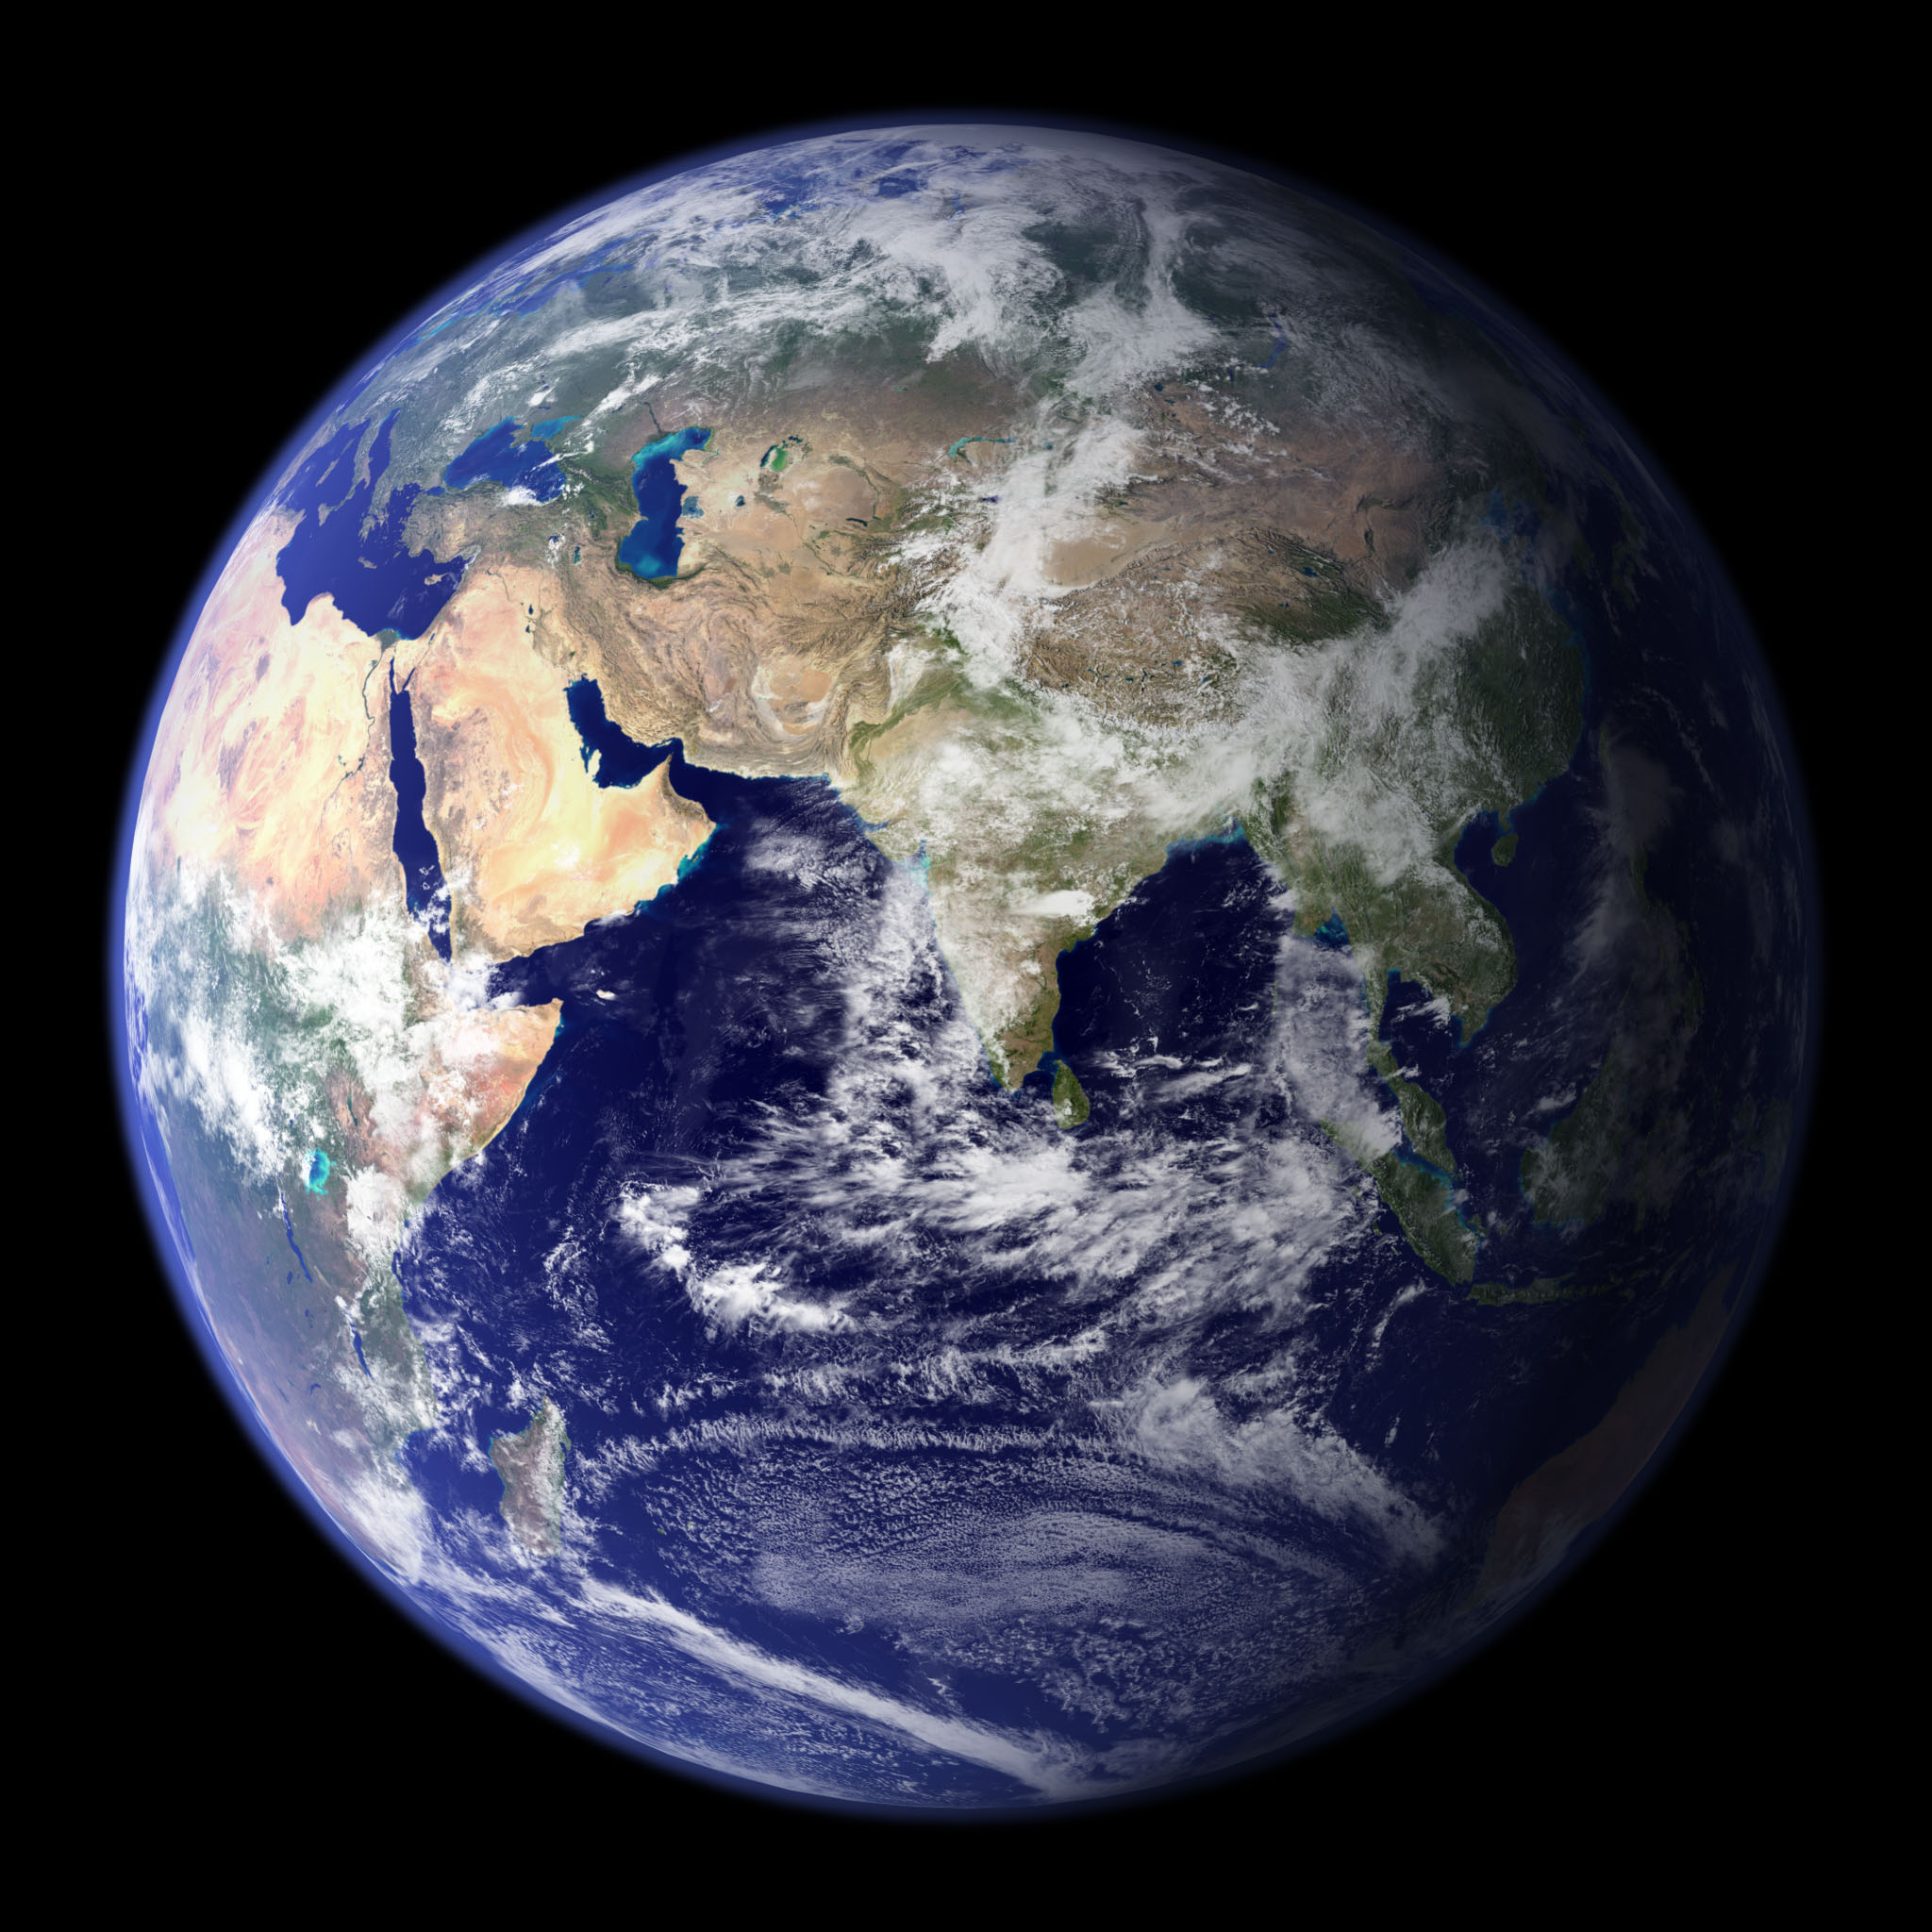 NASA Blue Marble of Eastern Hemisphere, October 2011